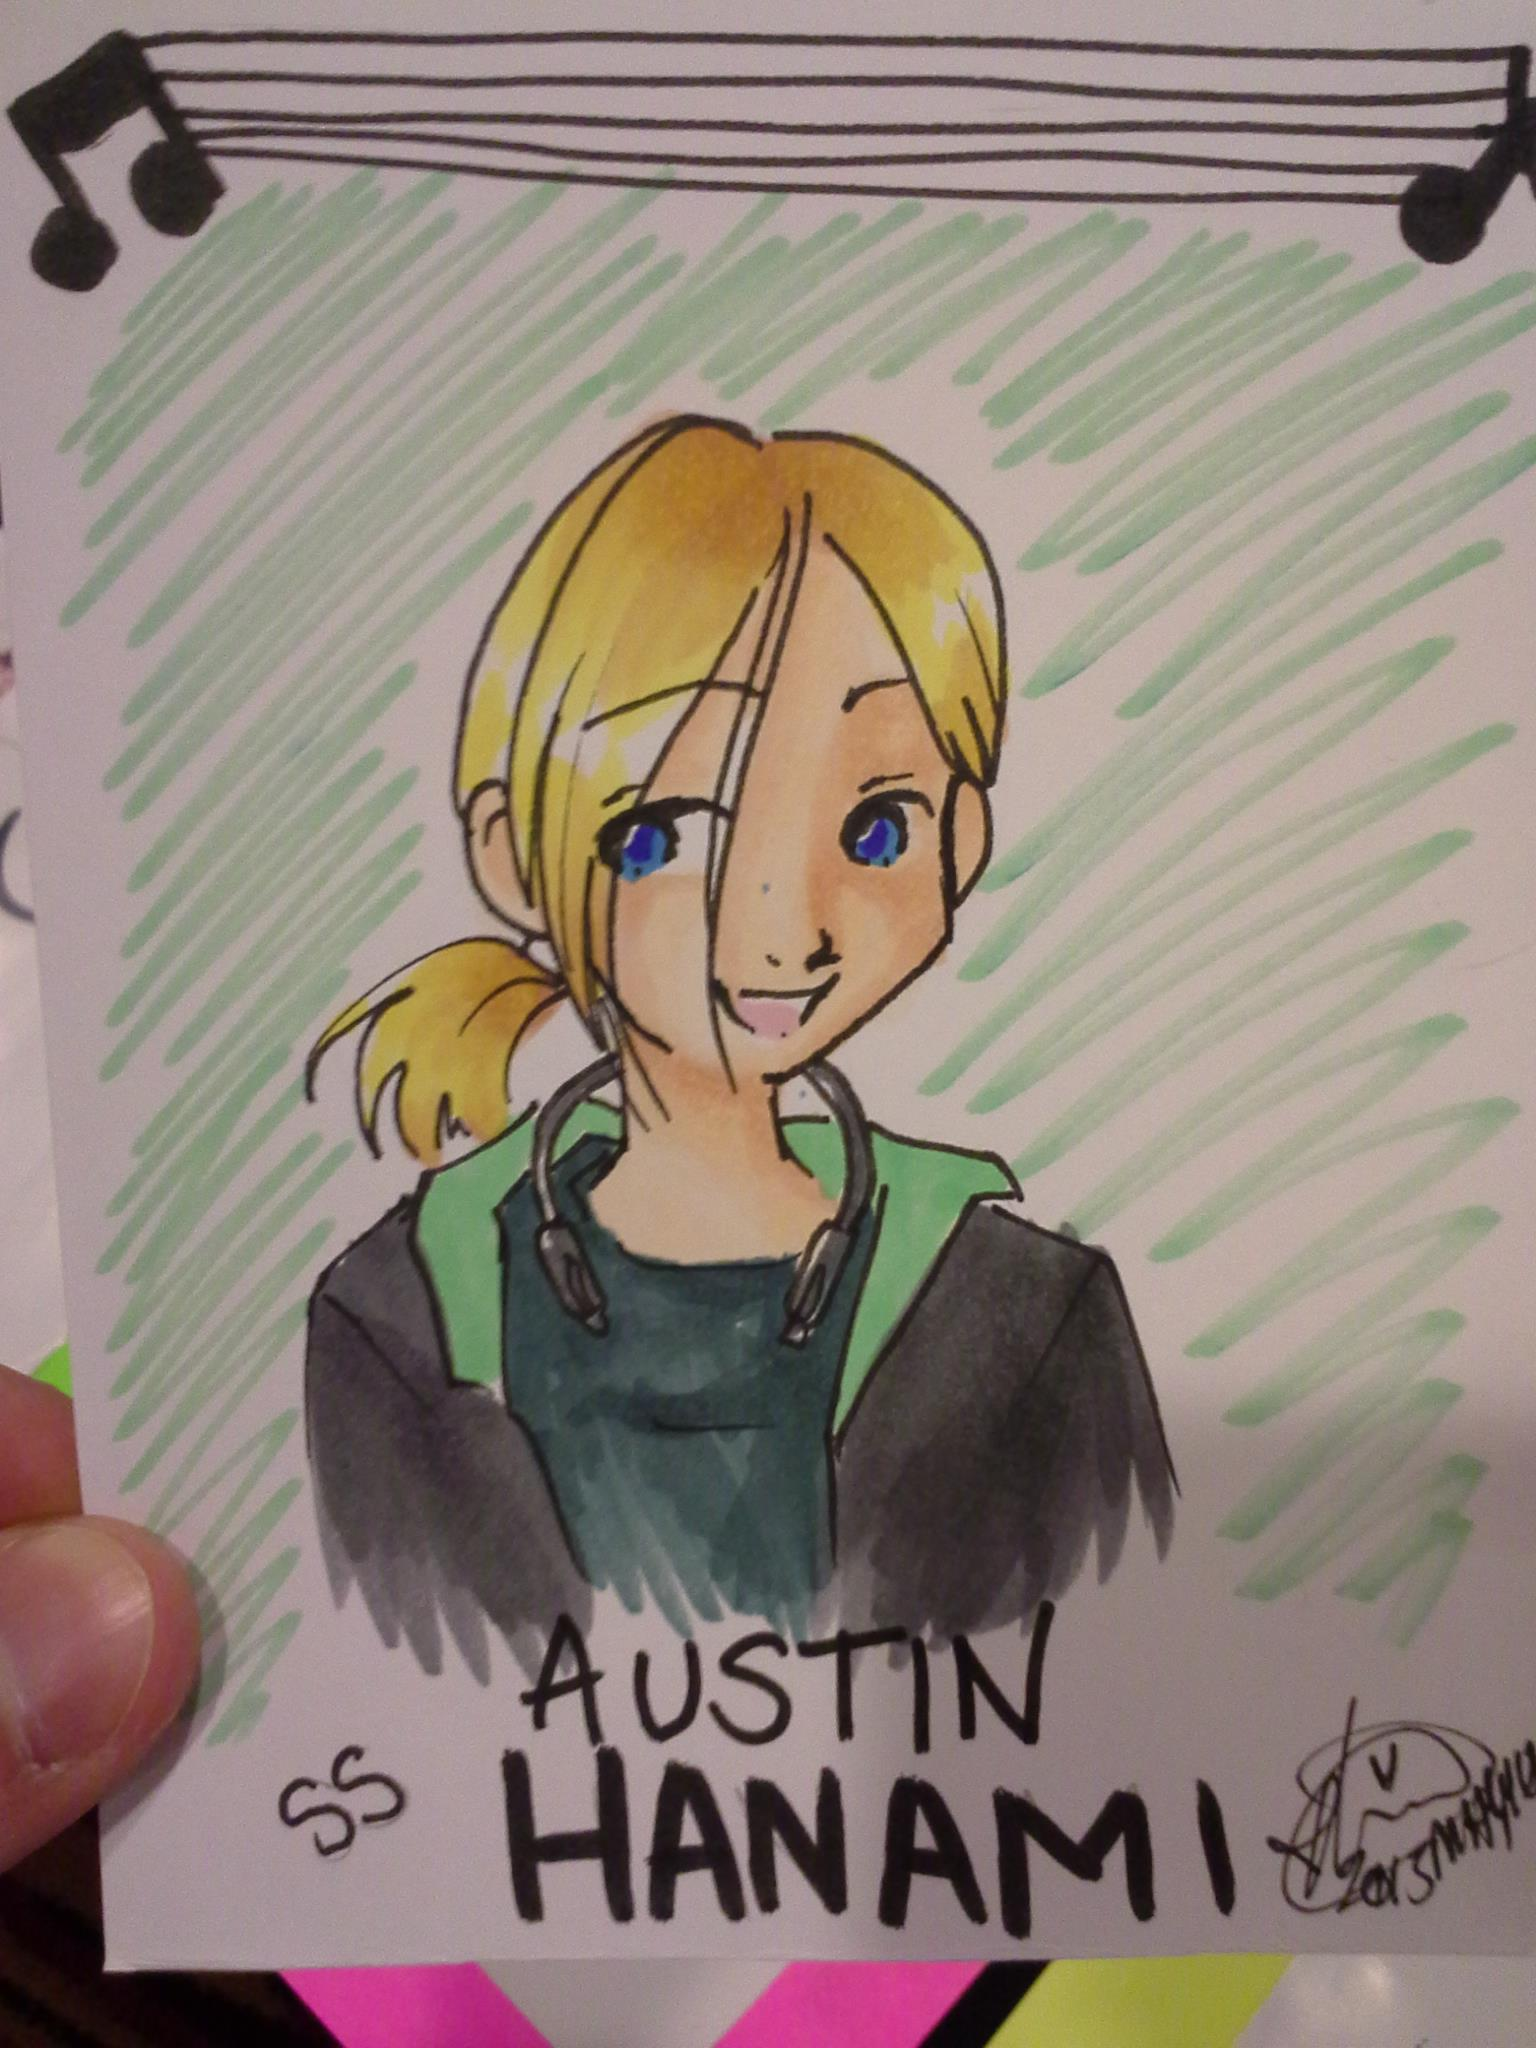 Beth [ hikaroo.deviantart.com ] drew custom badges for us at BelleCon, including our manager Austin